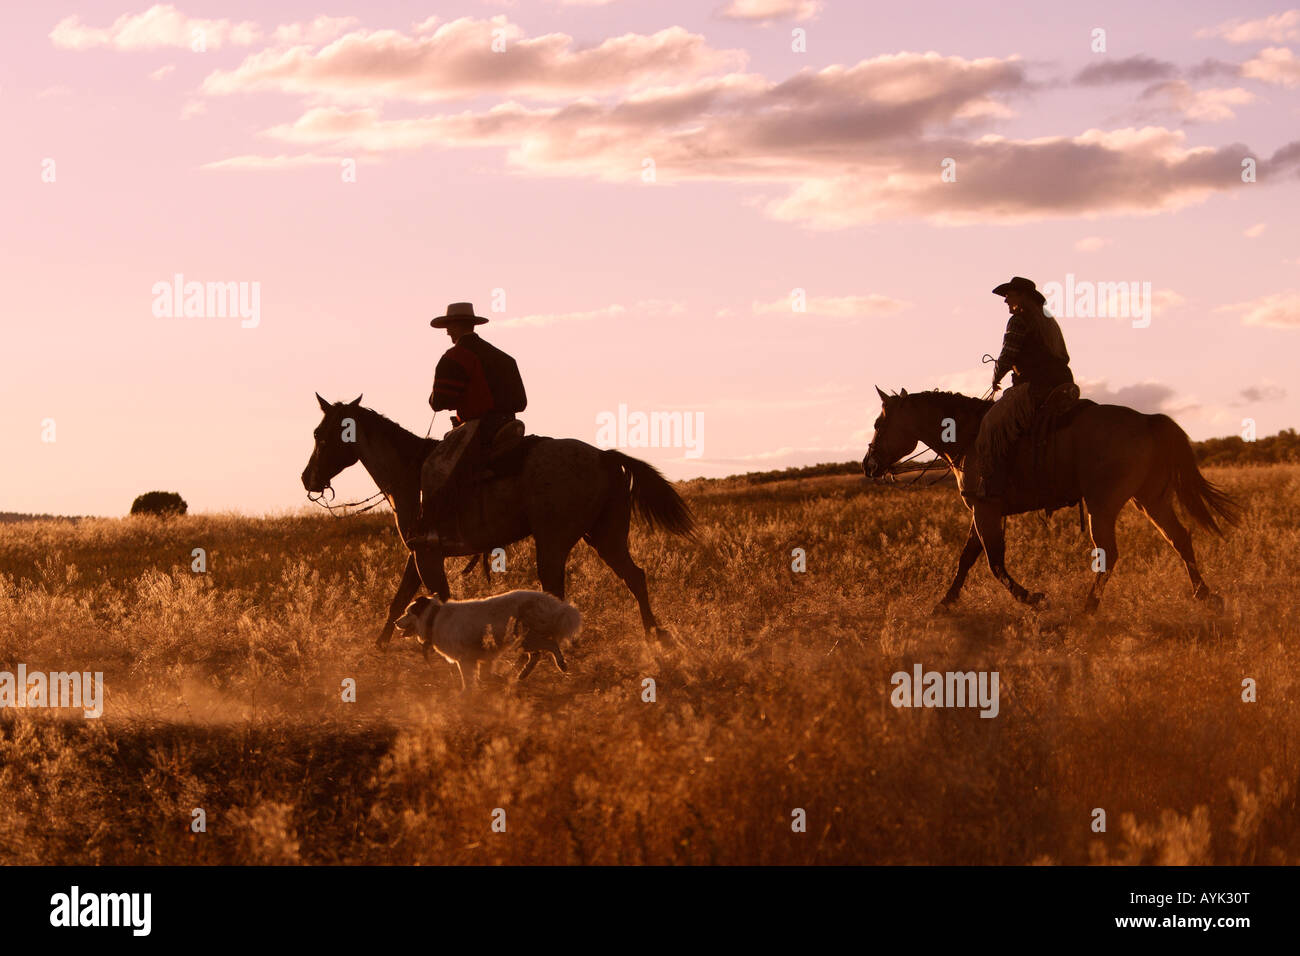 Cowboys on Quarters Horses (Equus caballus) trooting over the praerie in evening light accompanied by a dog - Stock Image